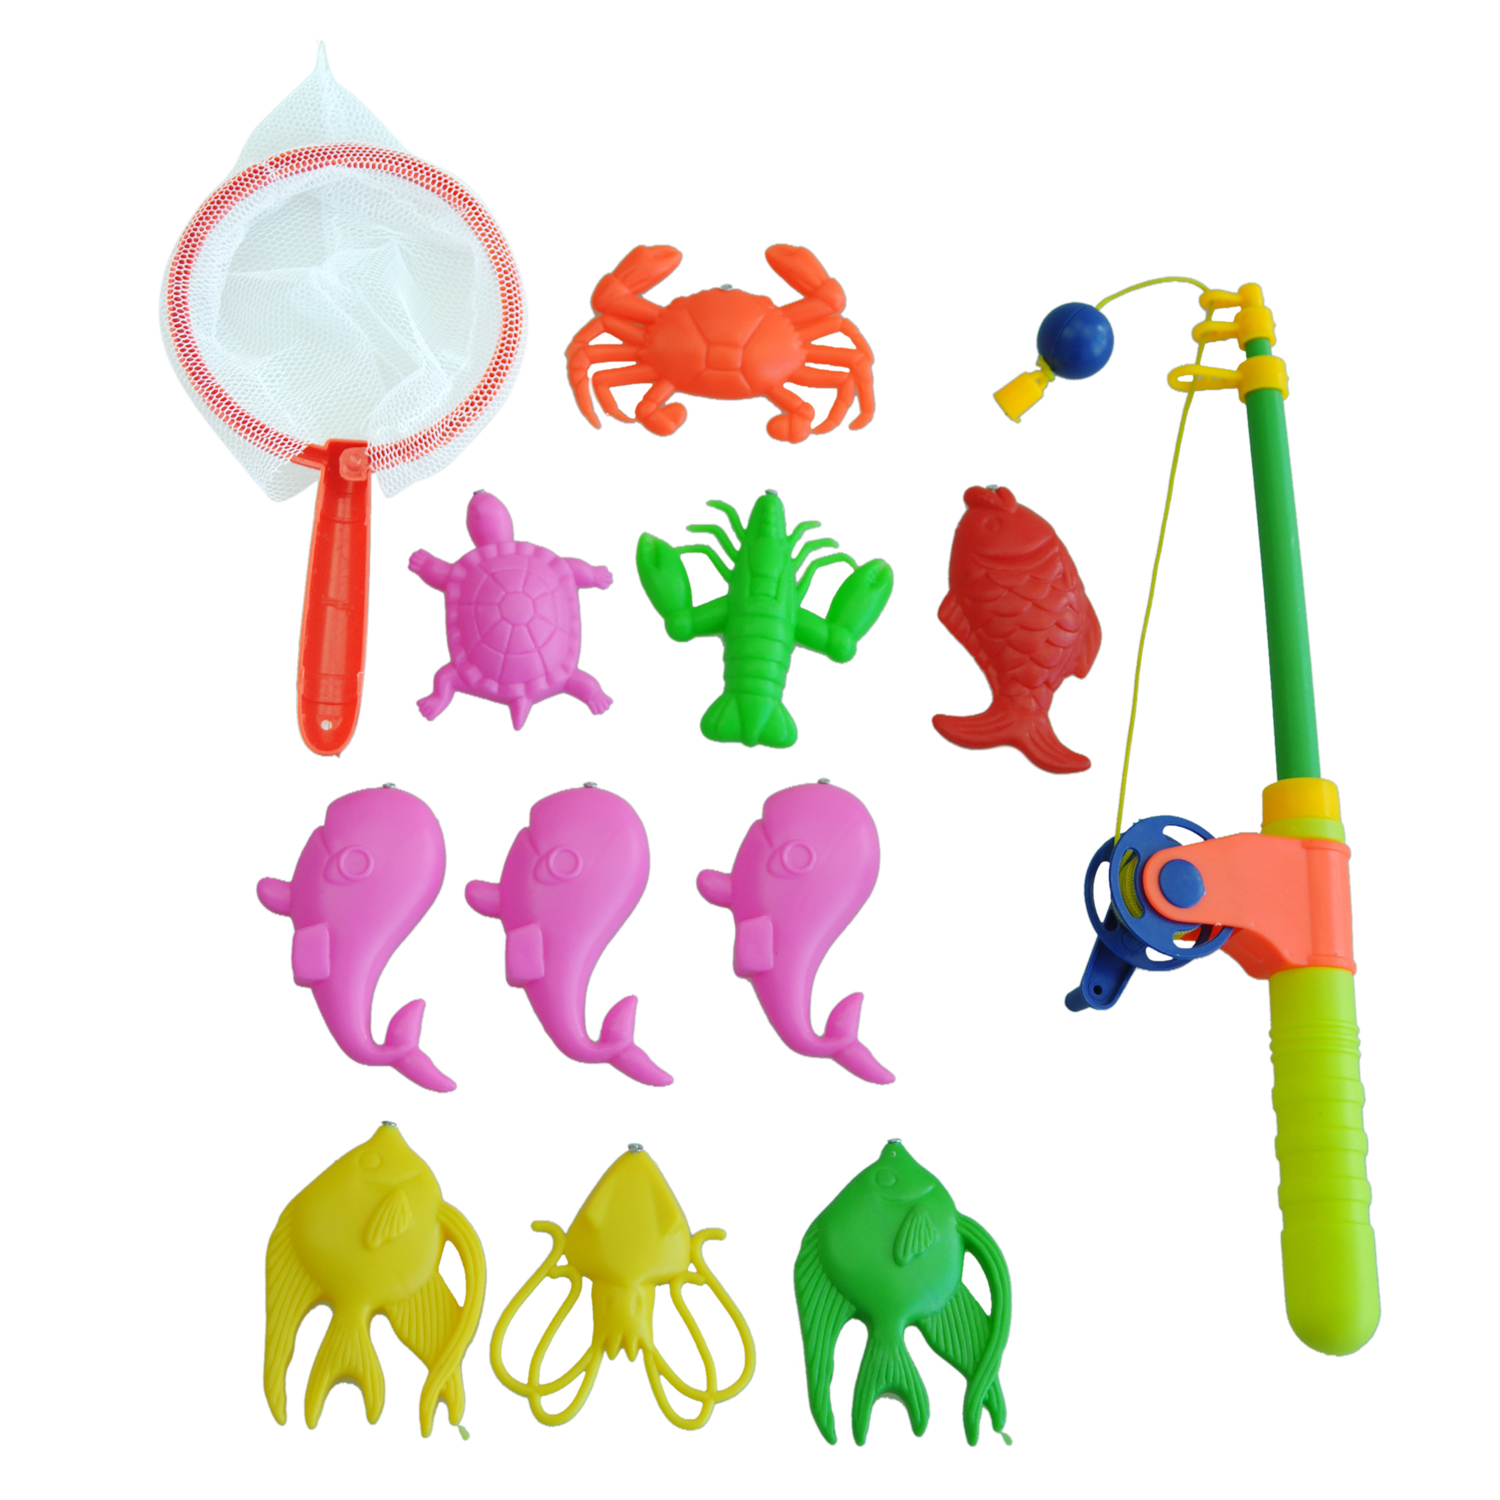 2018 New Magnetic Fishing Toy Rod Model Net 10 Fish Kid Children Baby Bath Time Fun Game